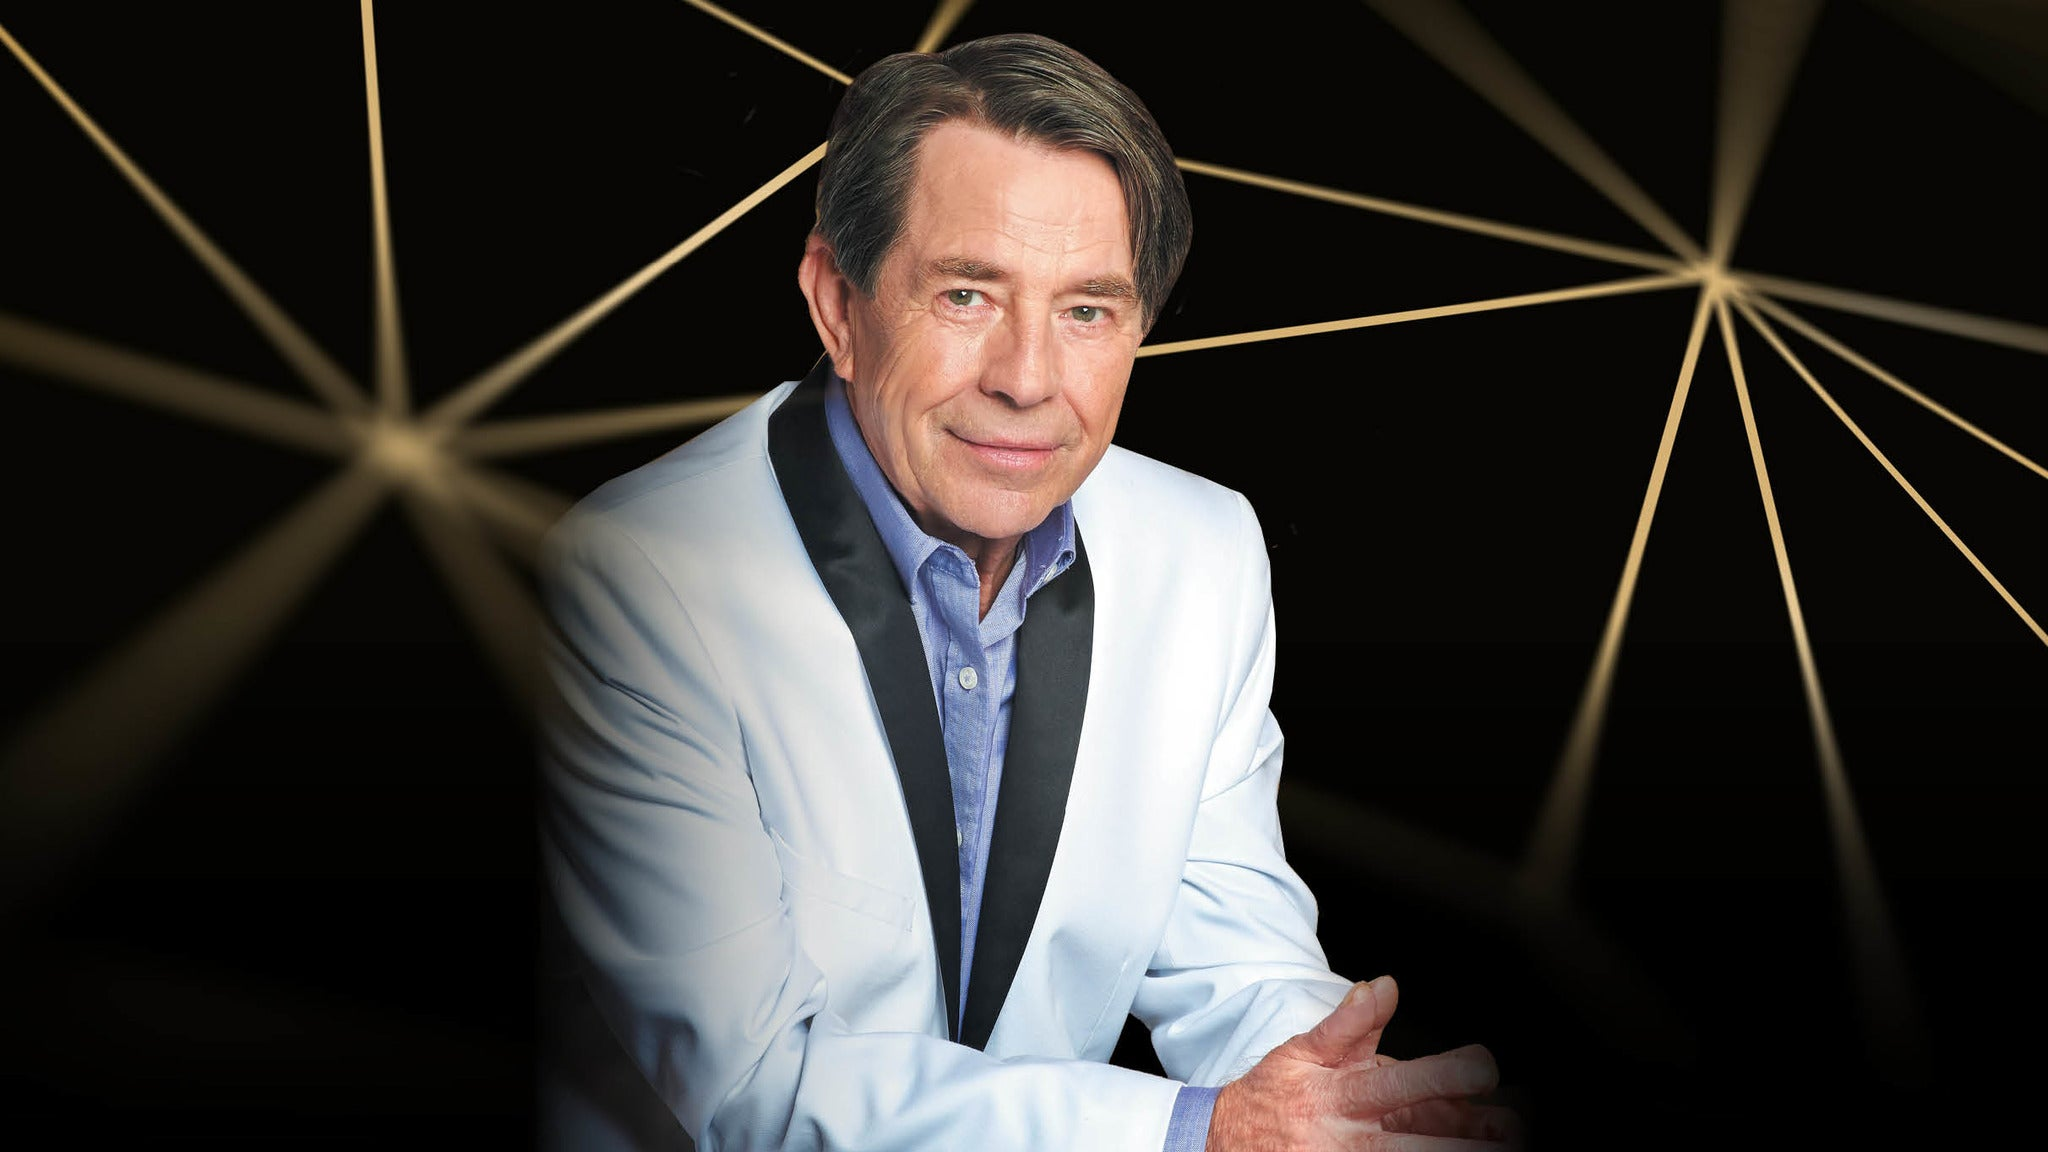 Image used with permission from Ticketmaster | John Paul Young - 50 Years Young tickets